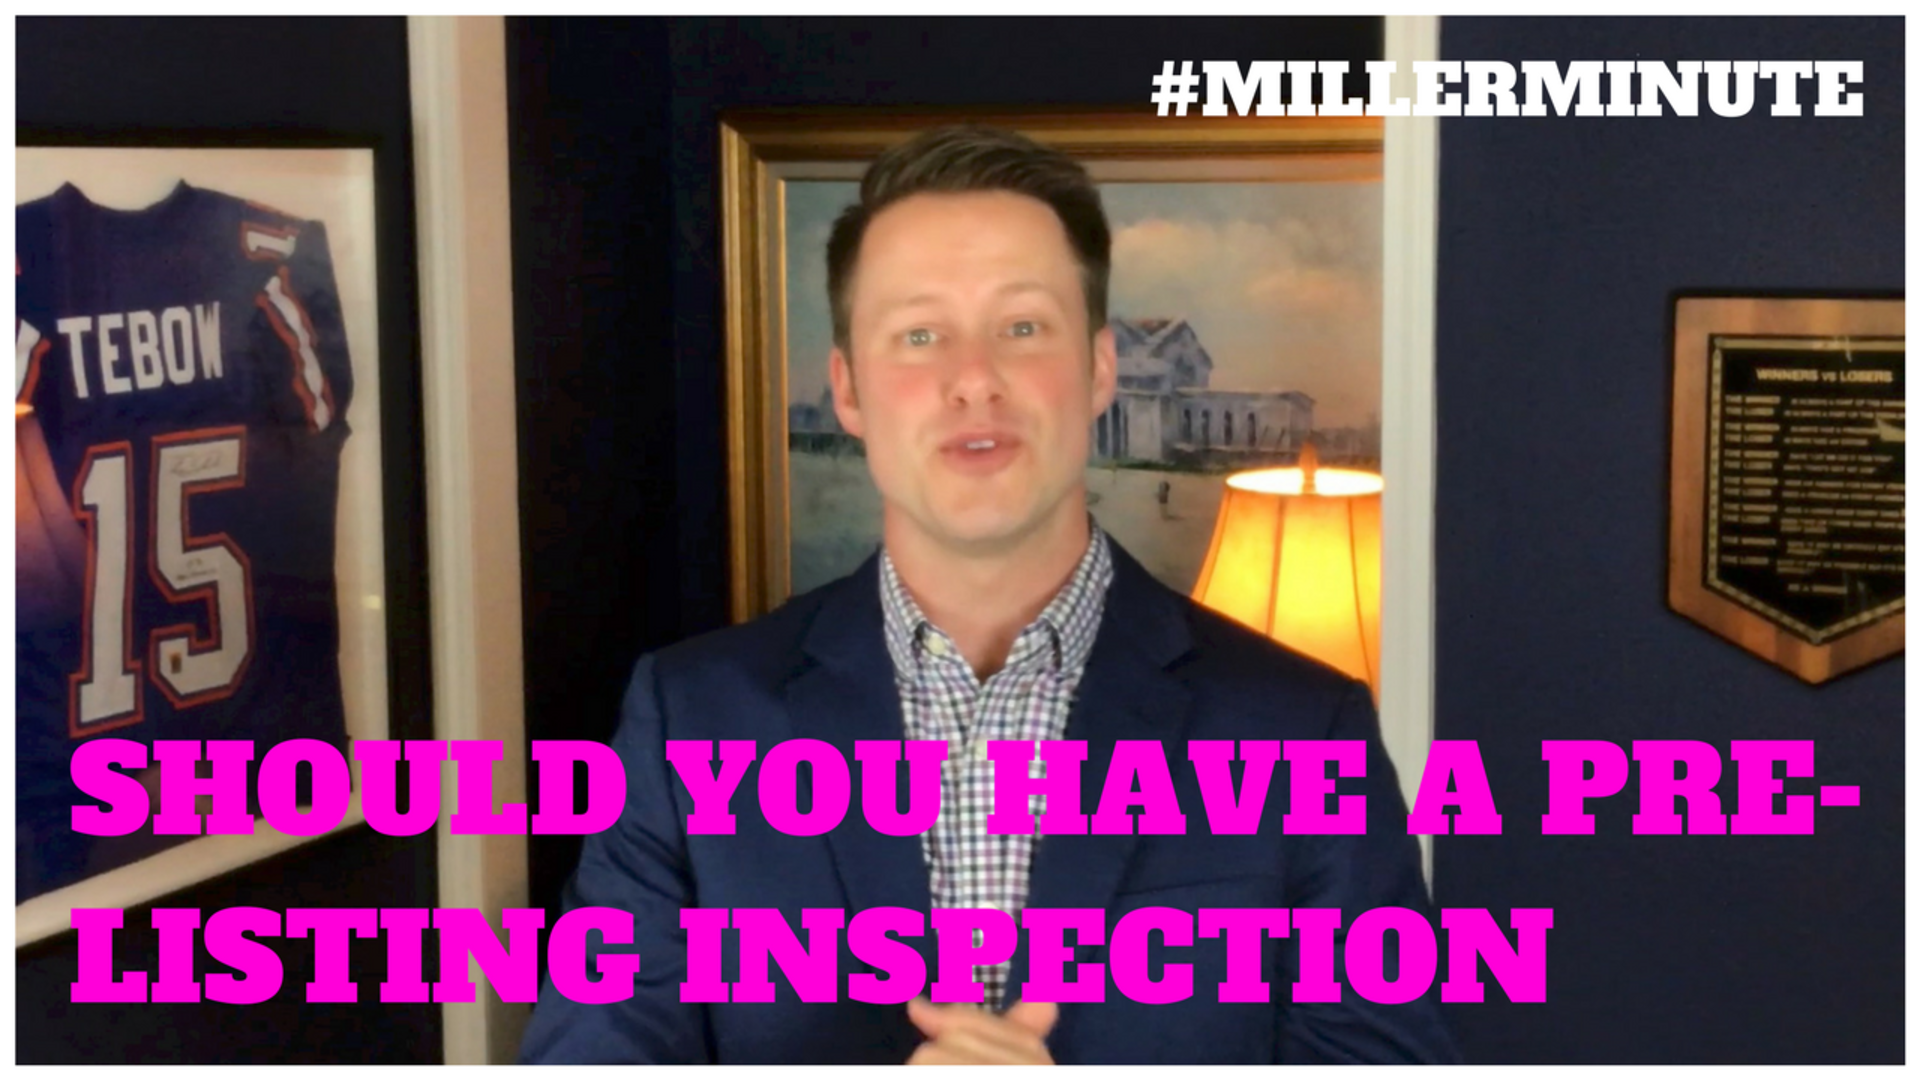 Should You Have A Pre-Listing Inspection? | Miller Minute | Real Estate Tips